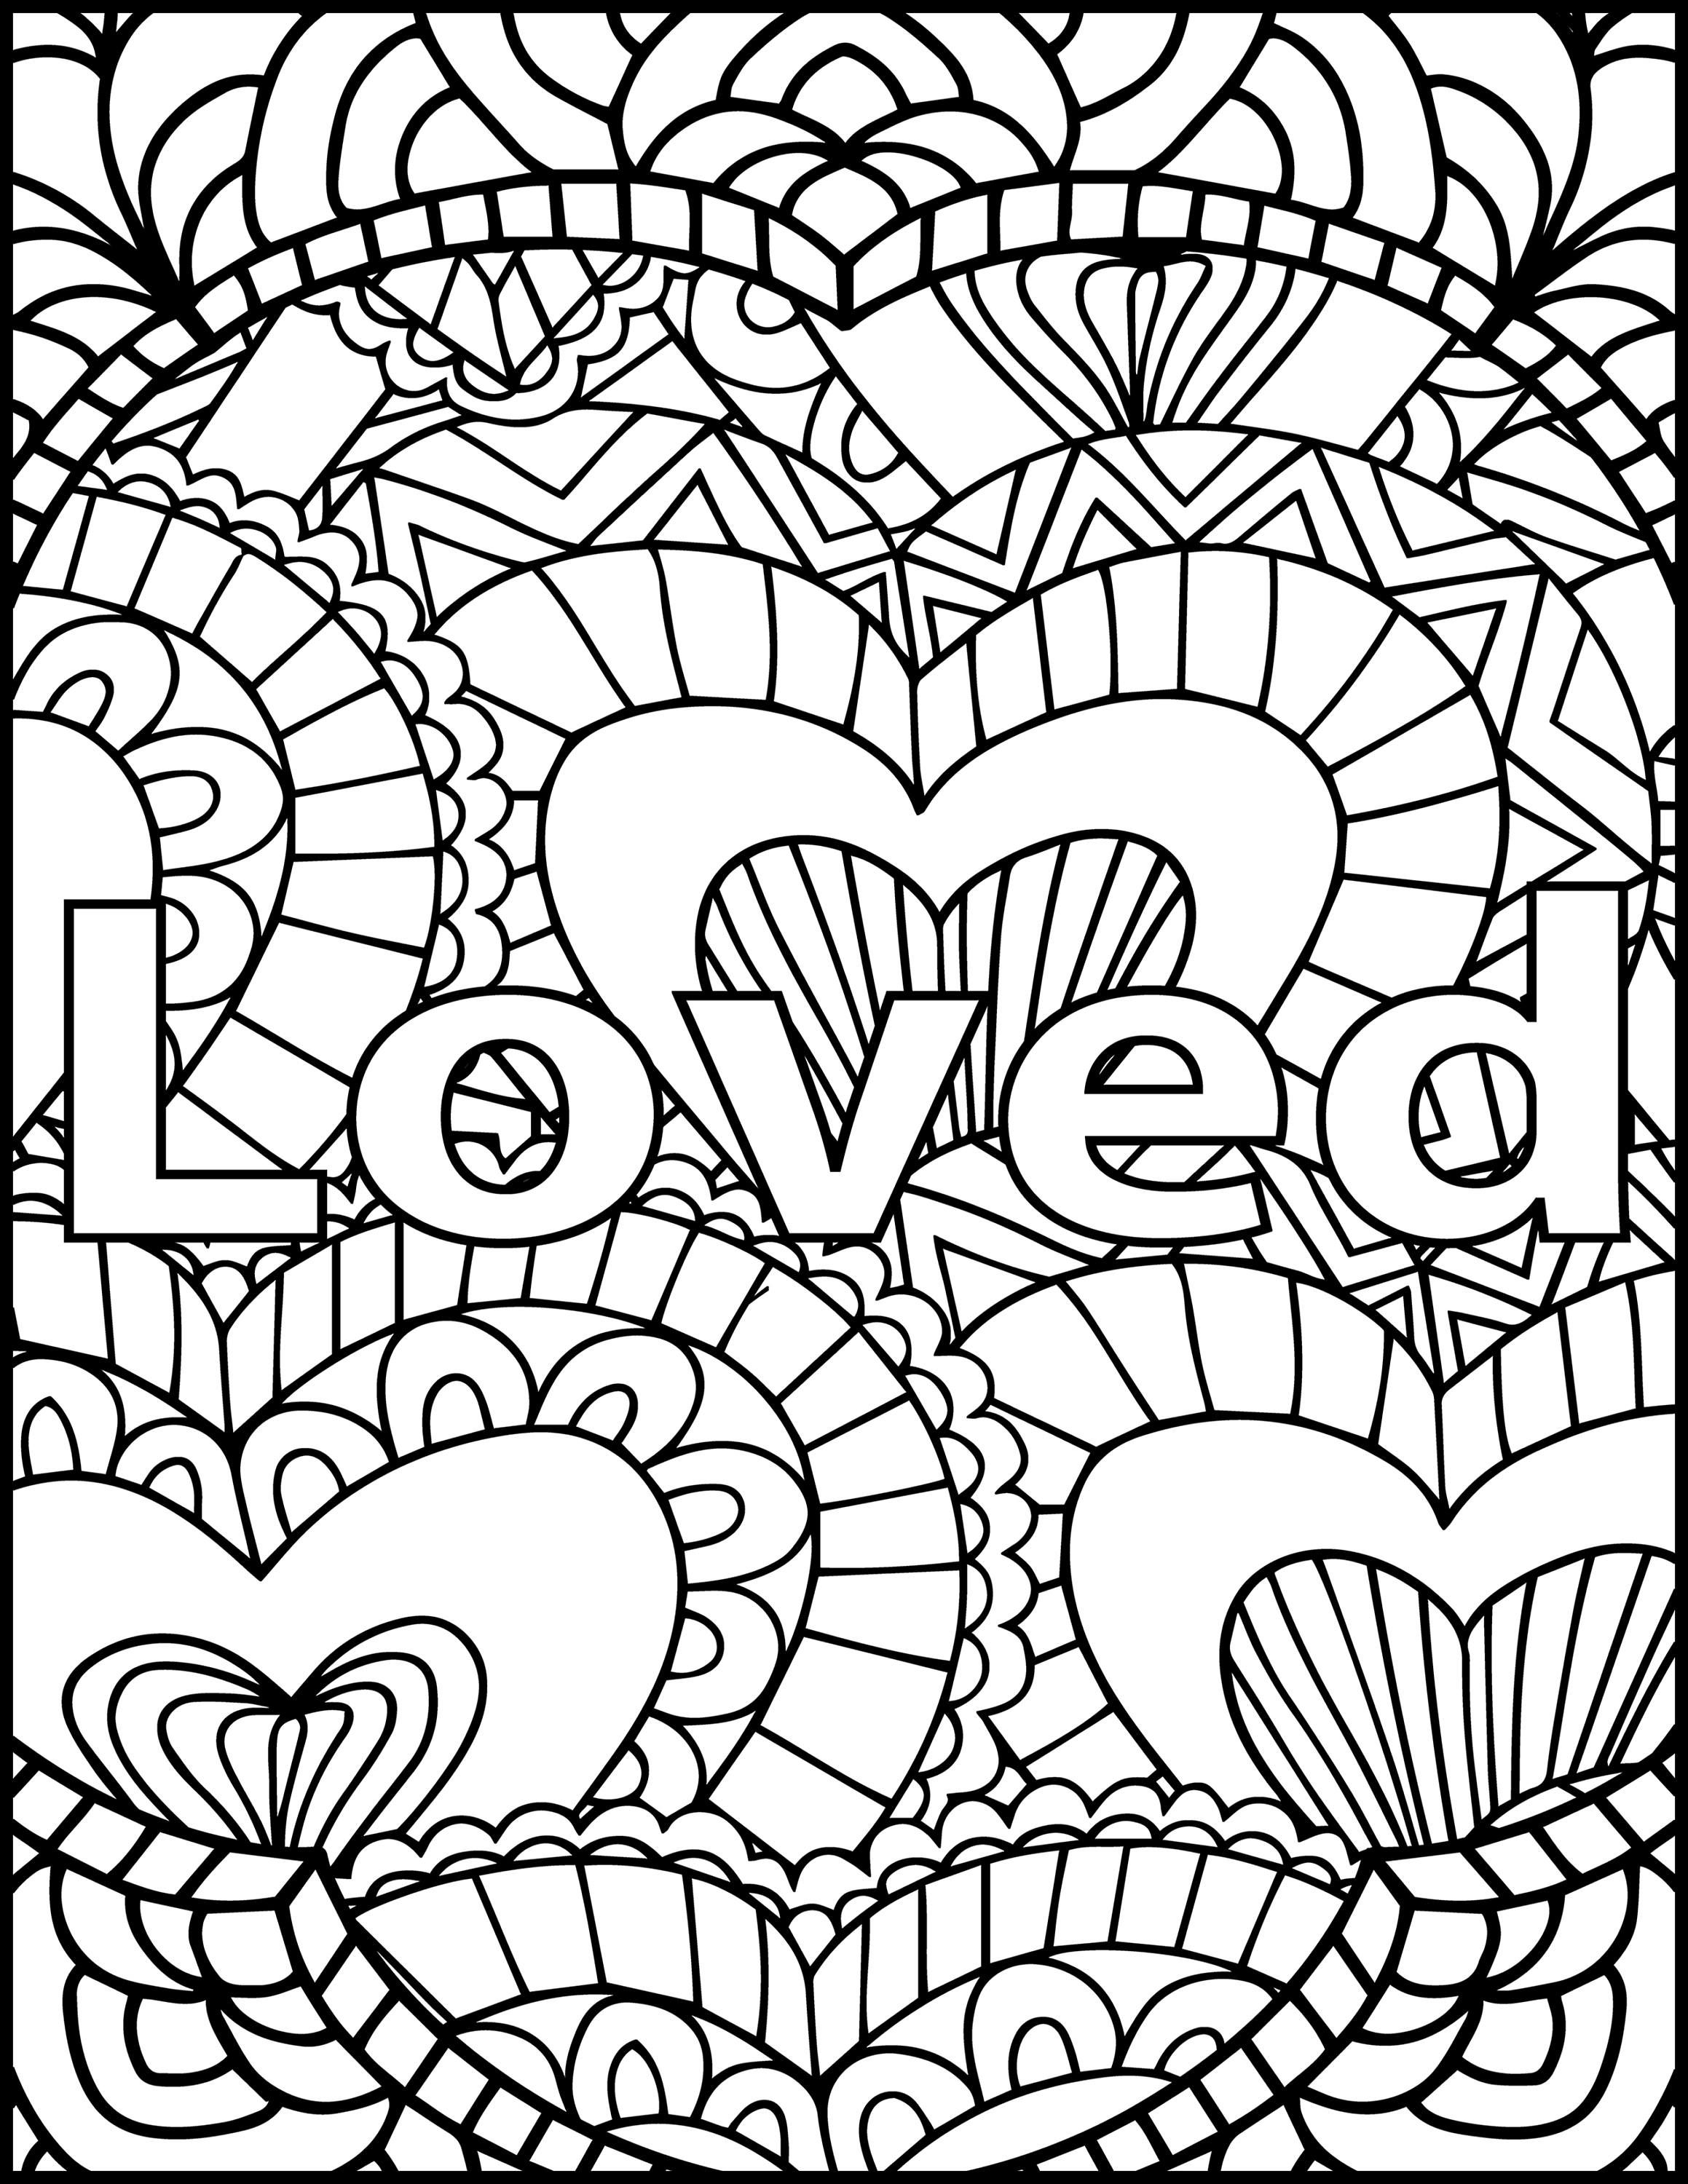 I Am Loved Adult Coloring Page Inspiring Message Coloring Love